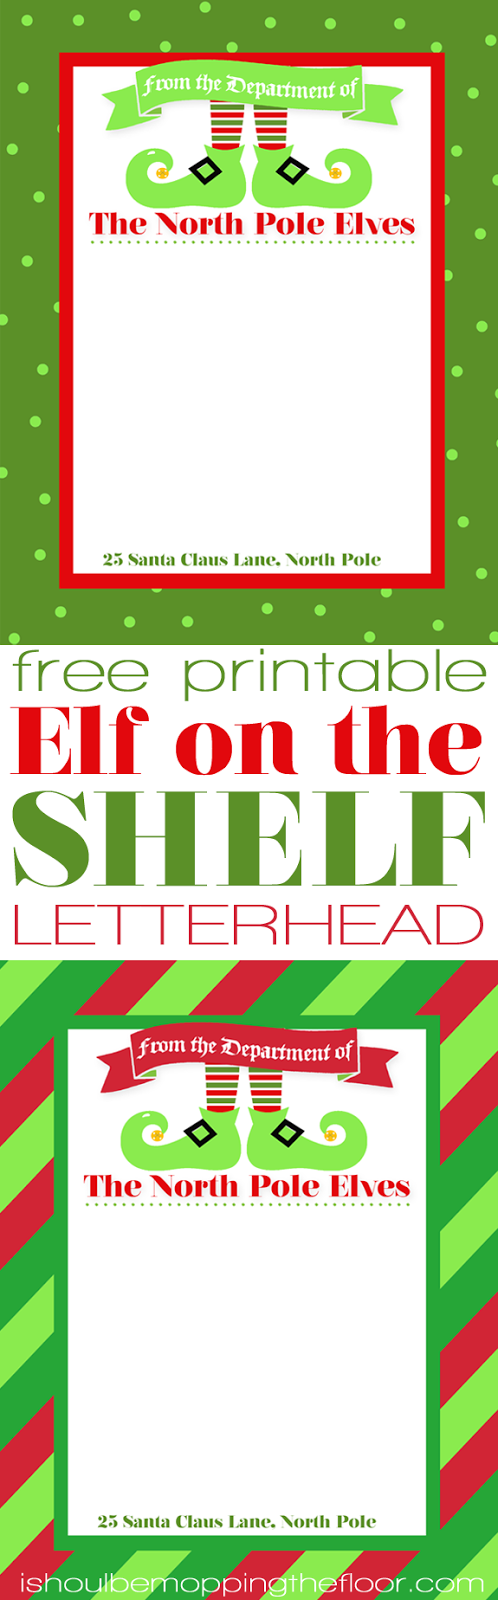 Exceptional image inside free printable elf on the shelf letter